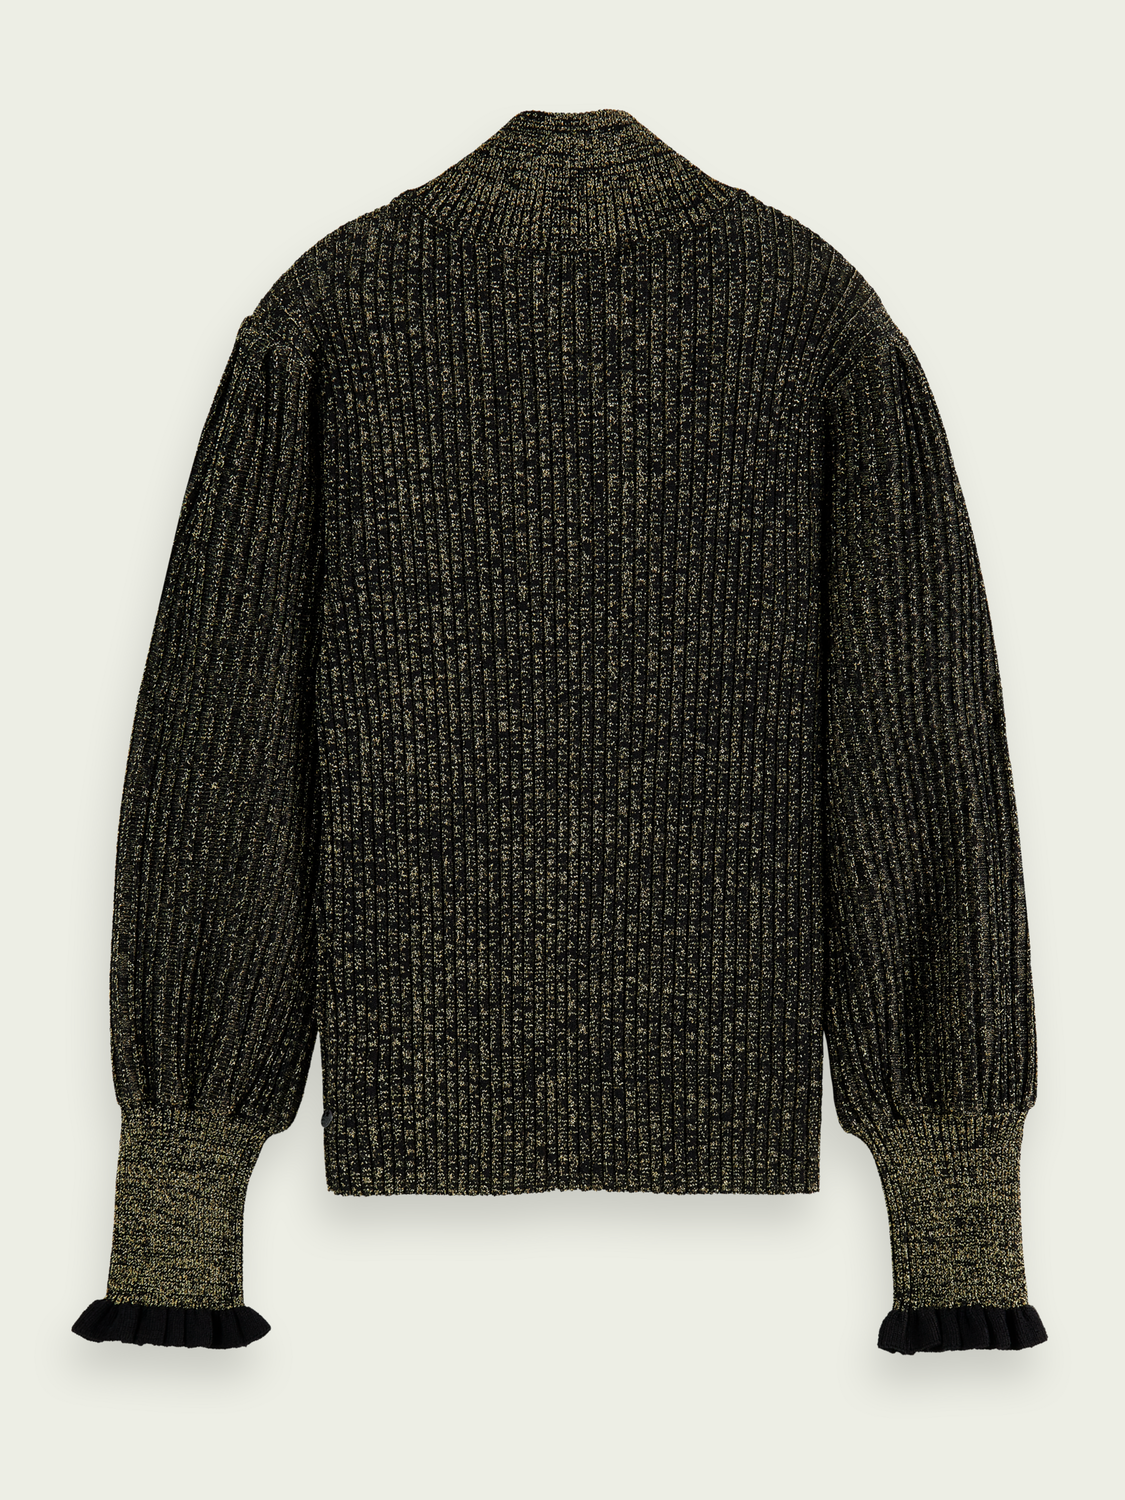 Kinder Sparkly voluminously-sleeved sweater